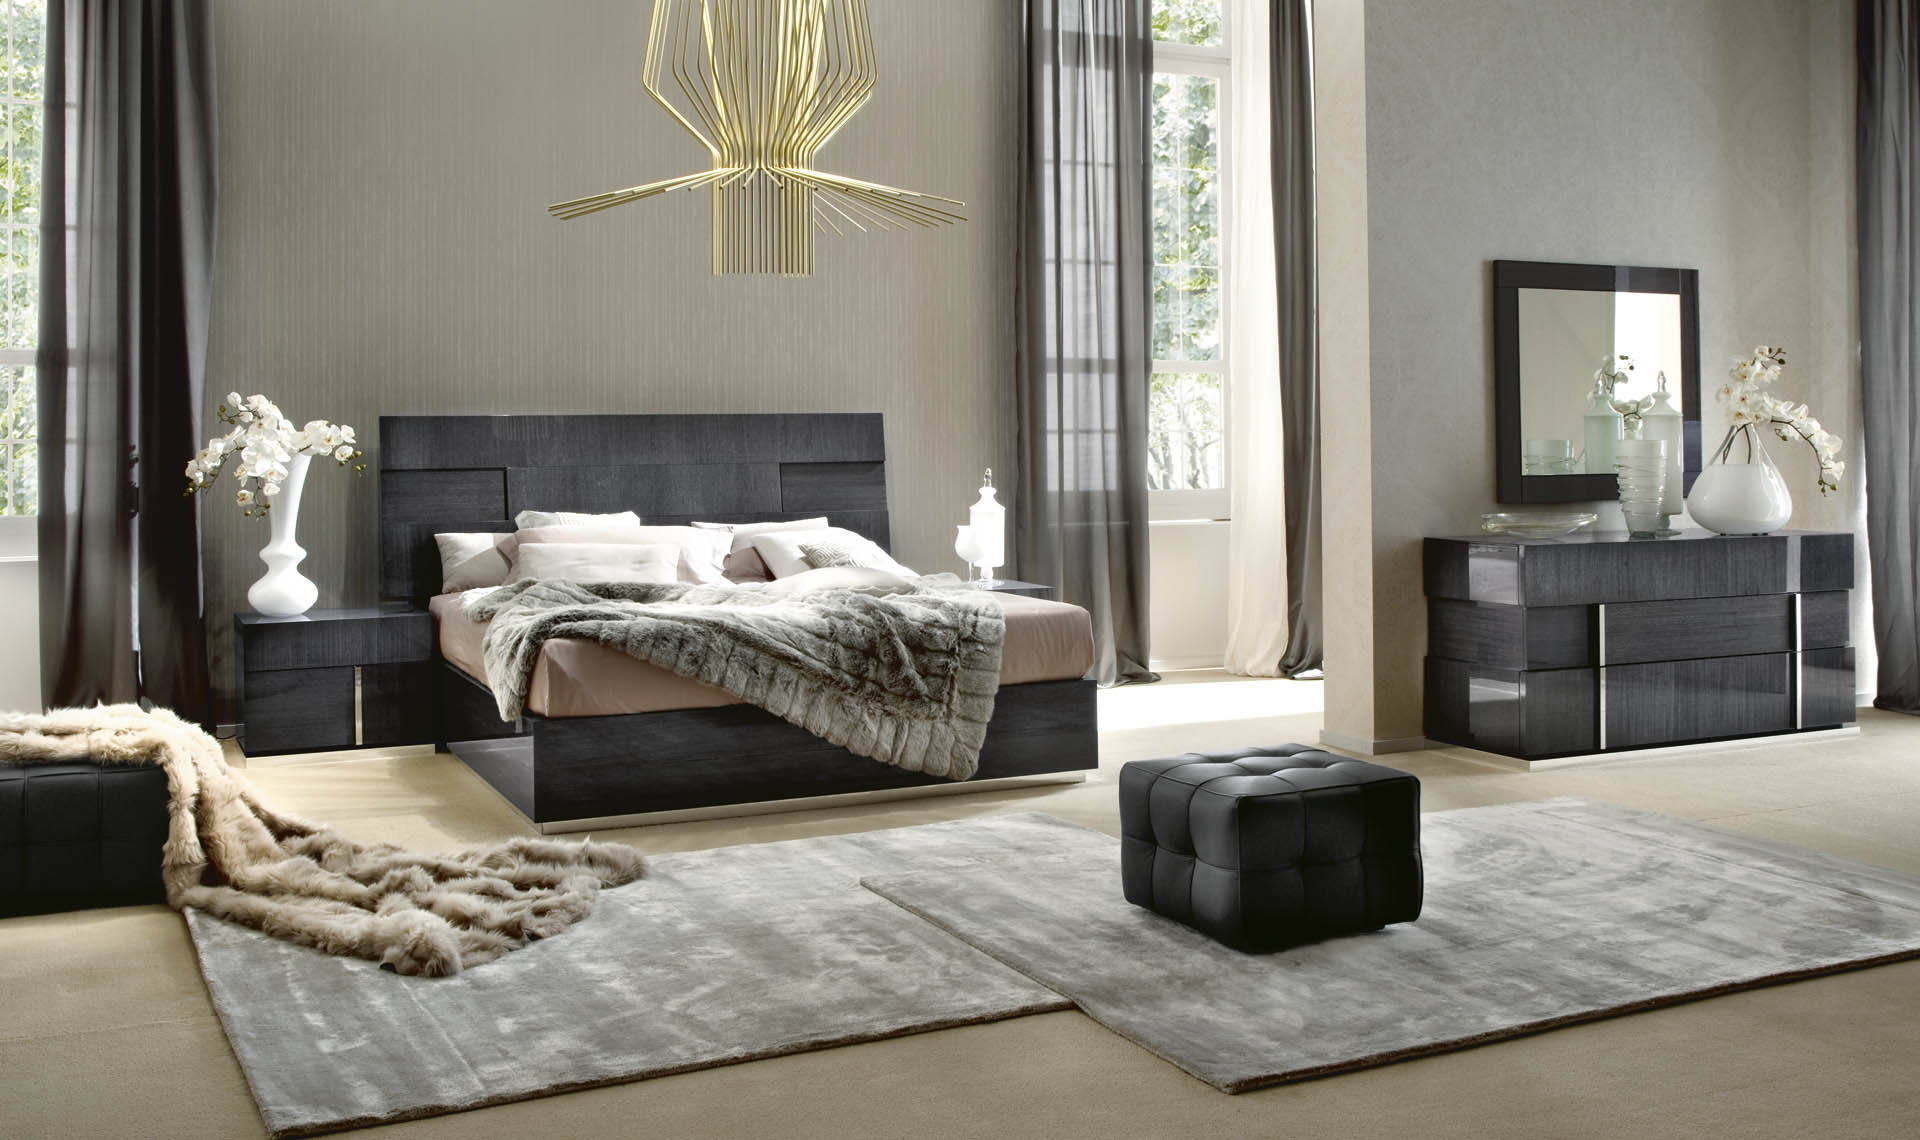 Montecarlo Bedroom Overview